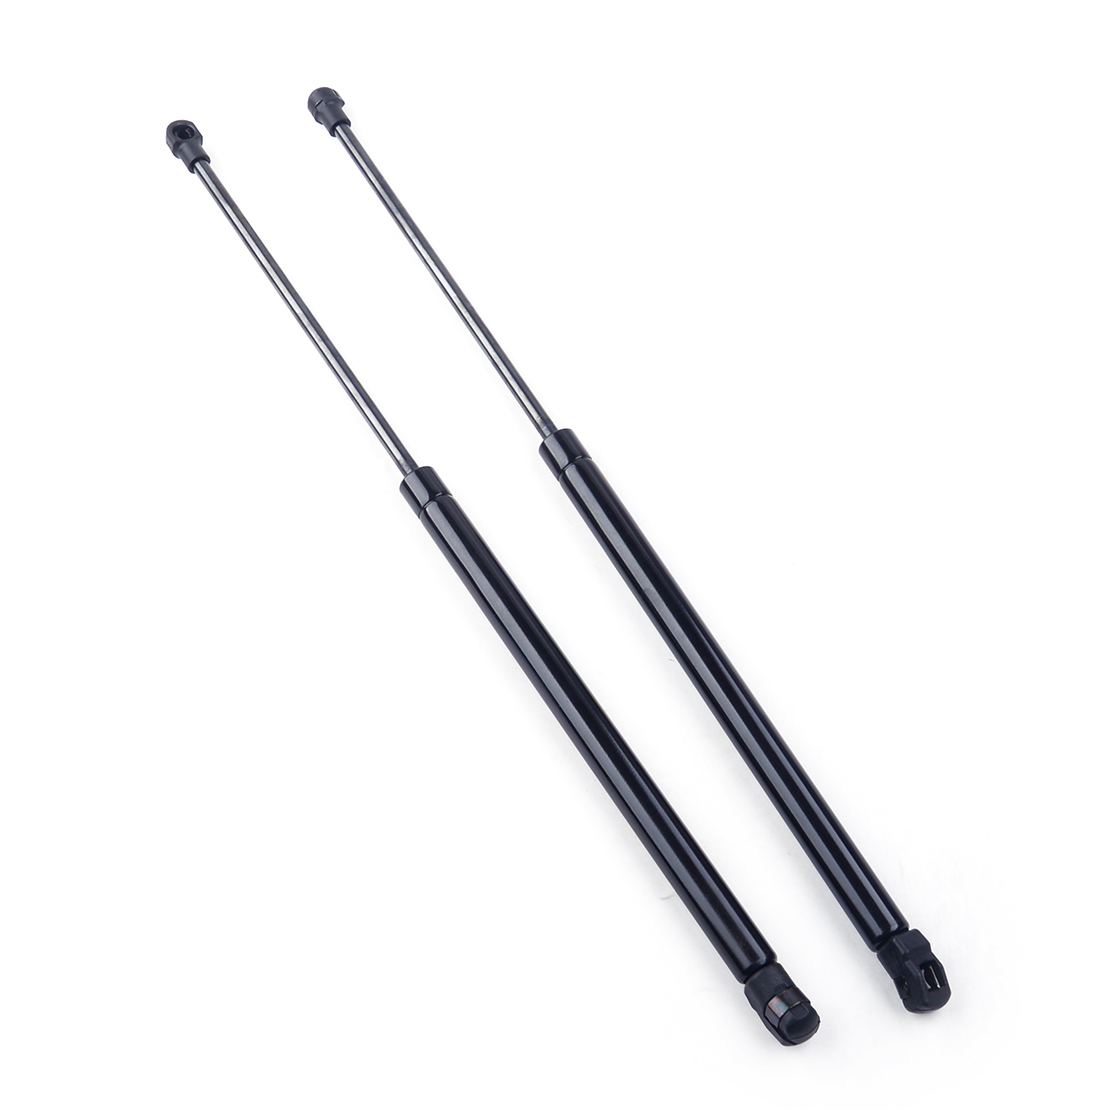 CITALL 2pcs Rear Car Trunk Hatch Tailgate Support Strut